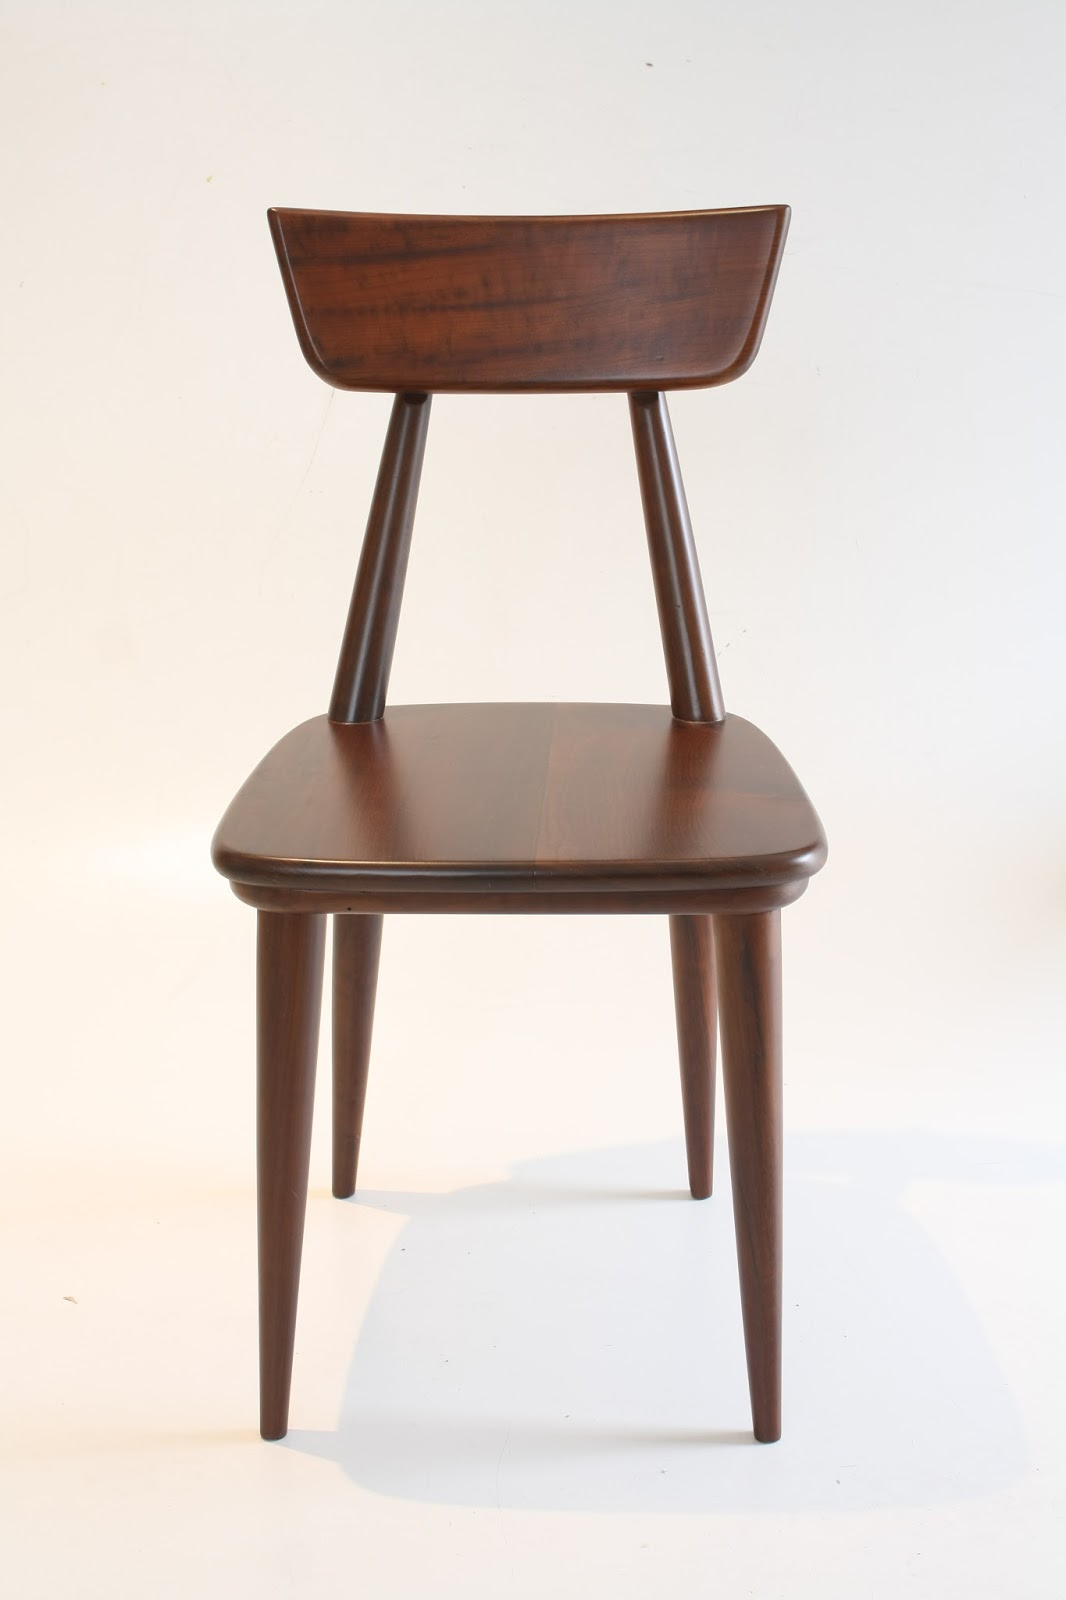 ... Are Very Sturdy Chairs. Height Of Seat U2013 45cm   Height Of Back U2013 84cm    Width U2013 44cm   Depth U2013 51cm. R2100 Each. Please Call Us On 021 448 2755 Or  Email ...